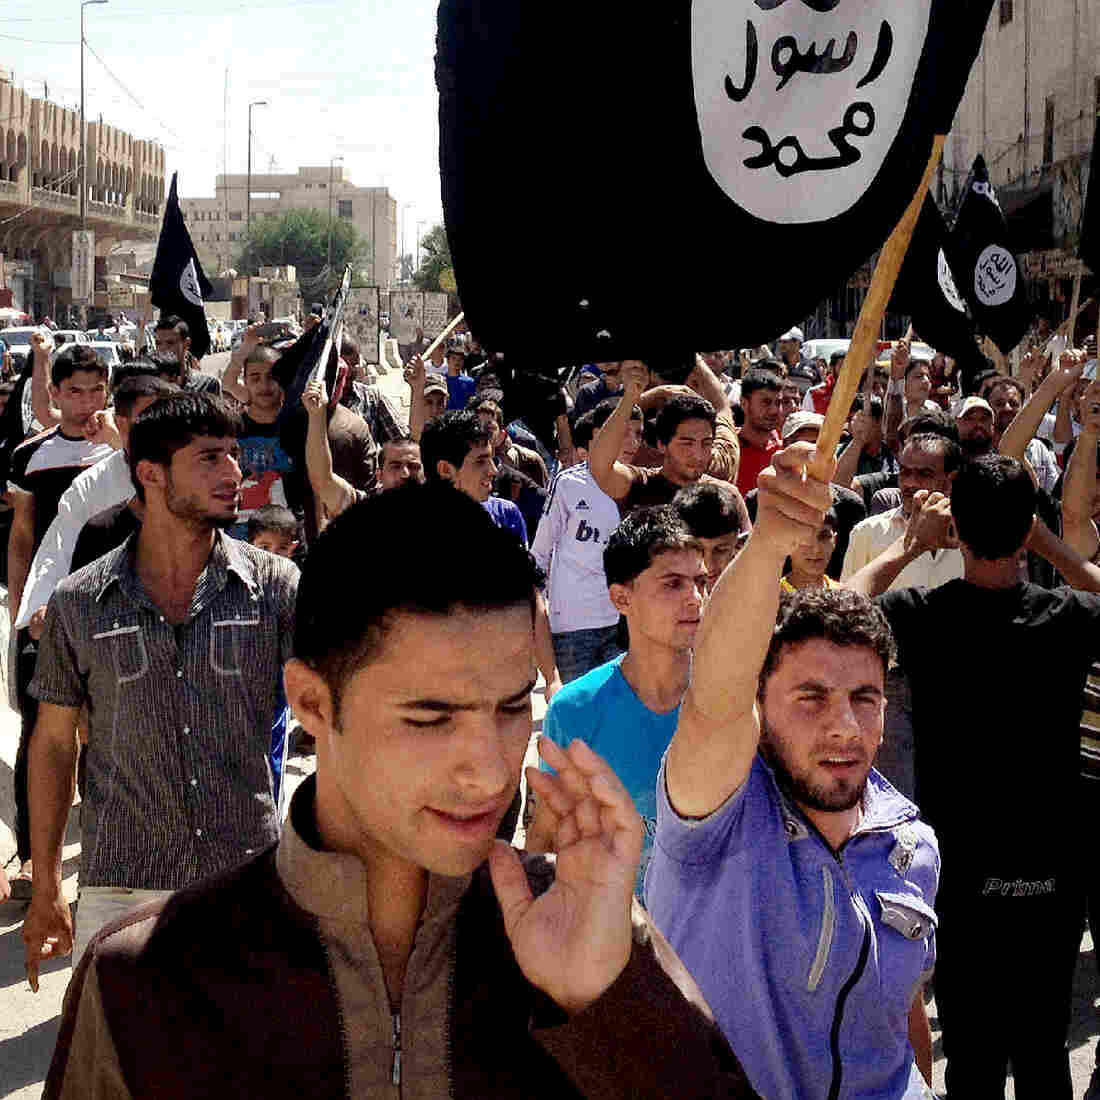 Demonstrators chant in favor of the Islamic State and carry the group's flags in Mosul, Iraq, in June. With videos, Internet magazines and social media, the group has effectively recruited throughout the world.